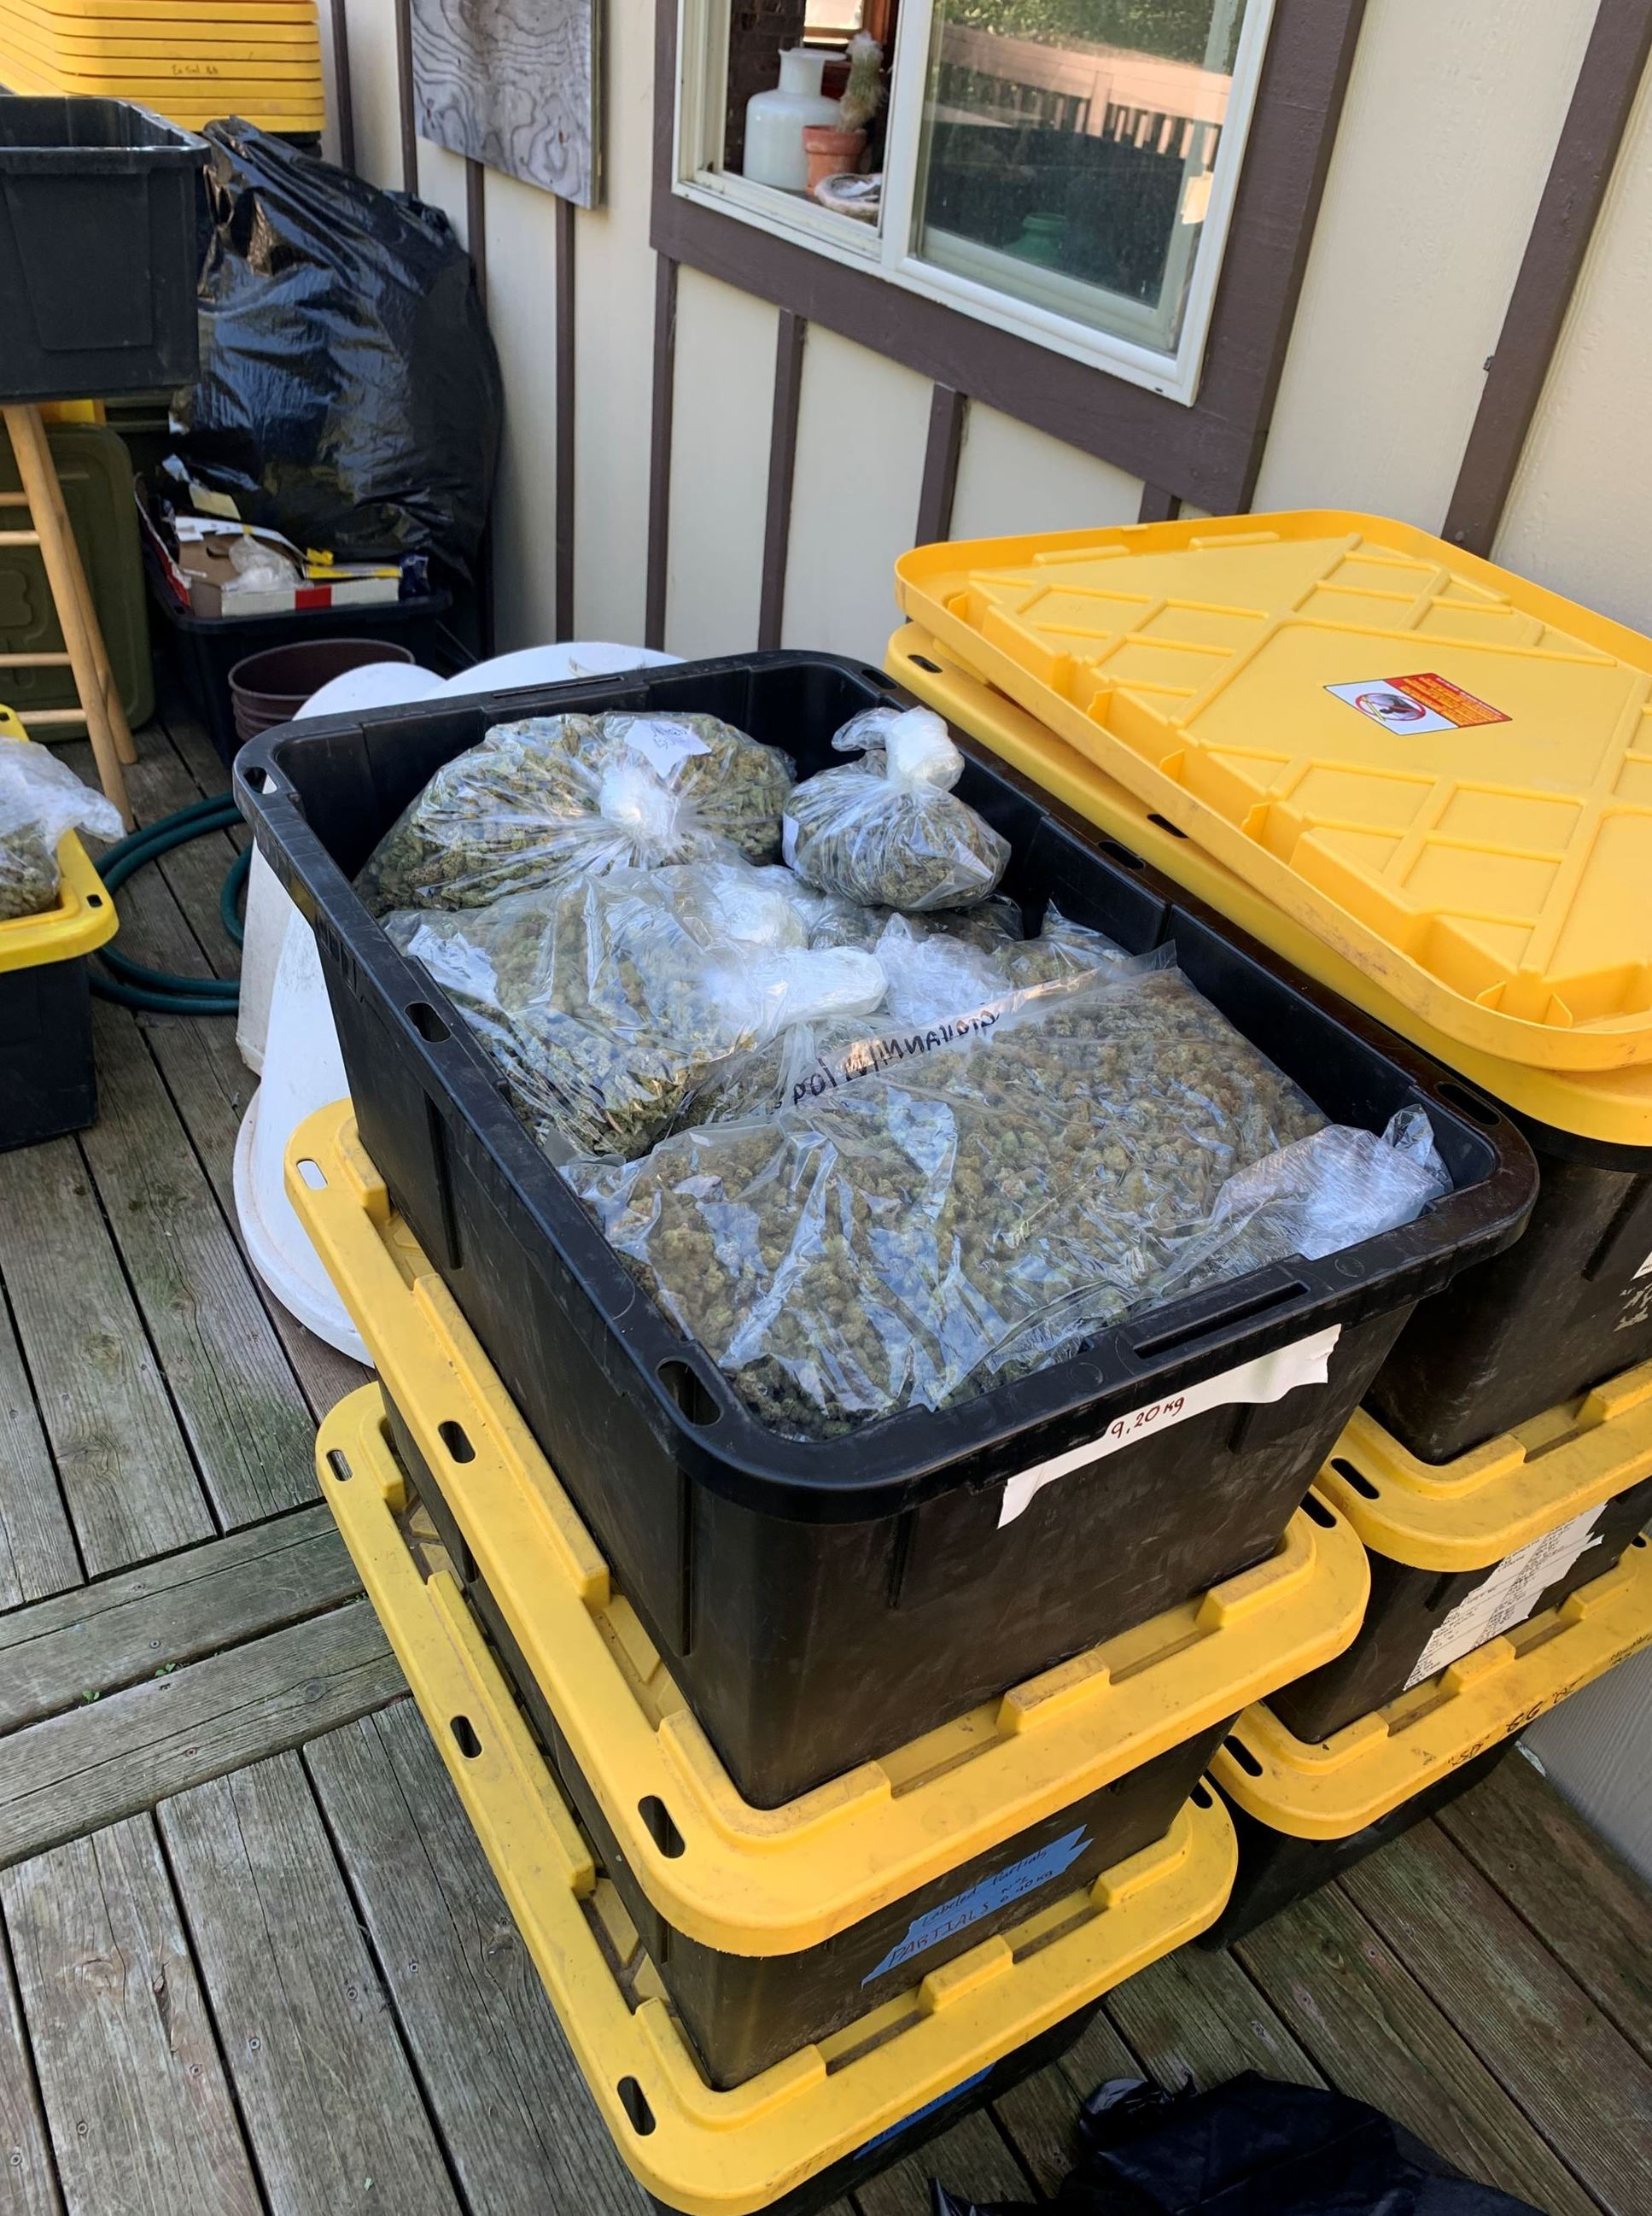 Black and yellow tote filled with packaged cannabis